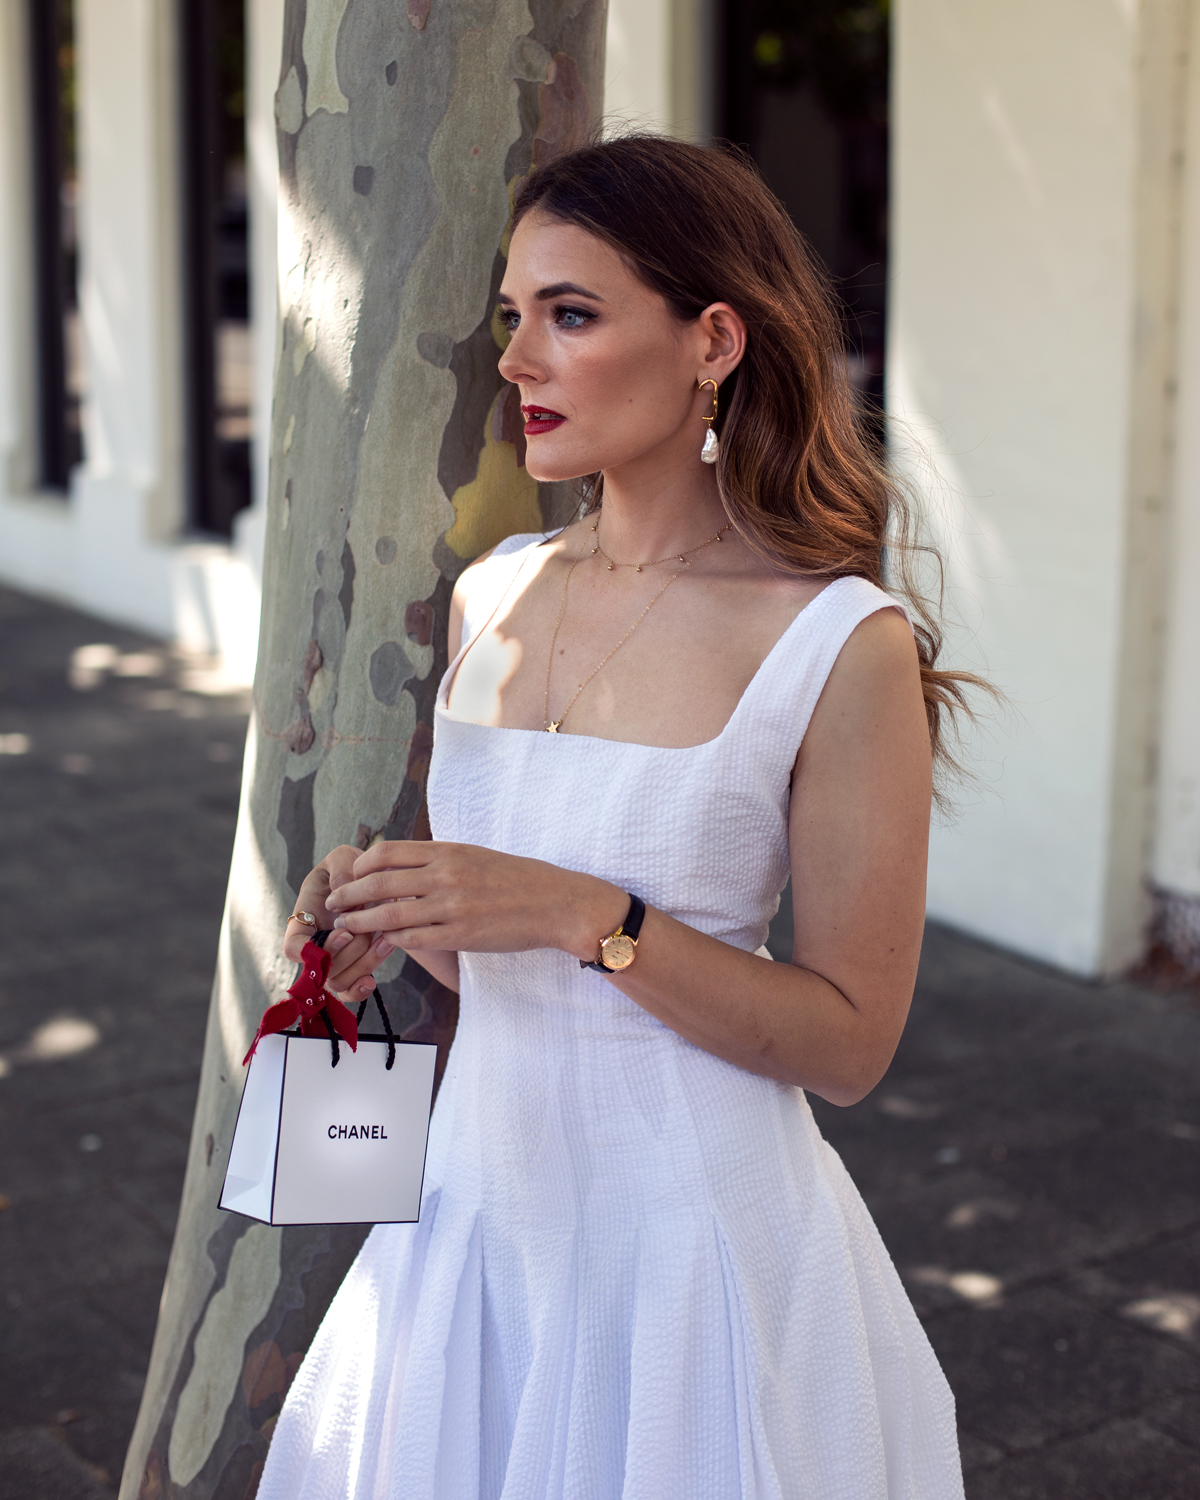 2018 Christmas gift guide Inspiring Wit blog featuring women's gift ideas Interval white dress and Chanel beauty look with VOA fine jewellery x Jo Hombsh earrings